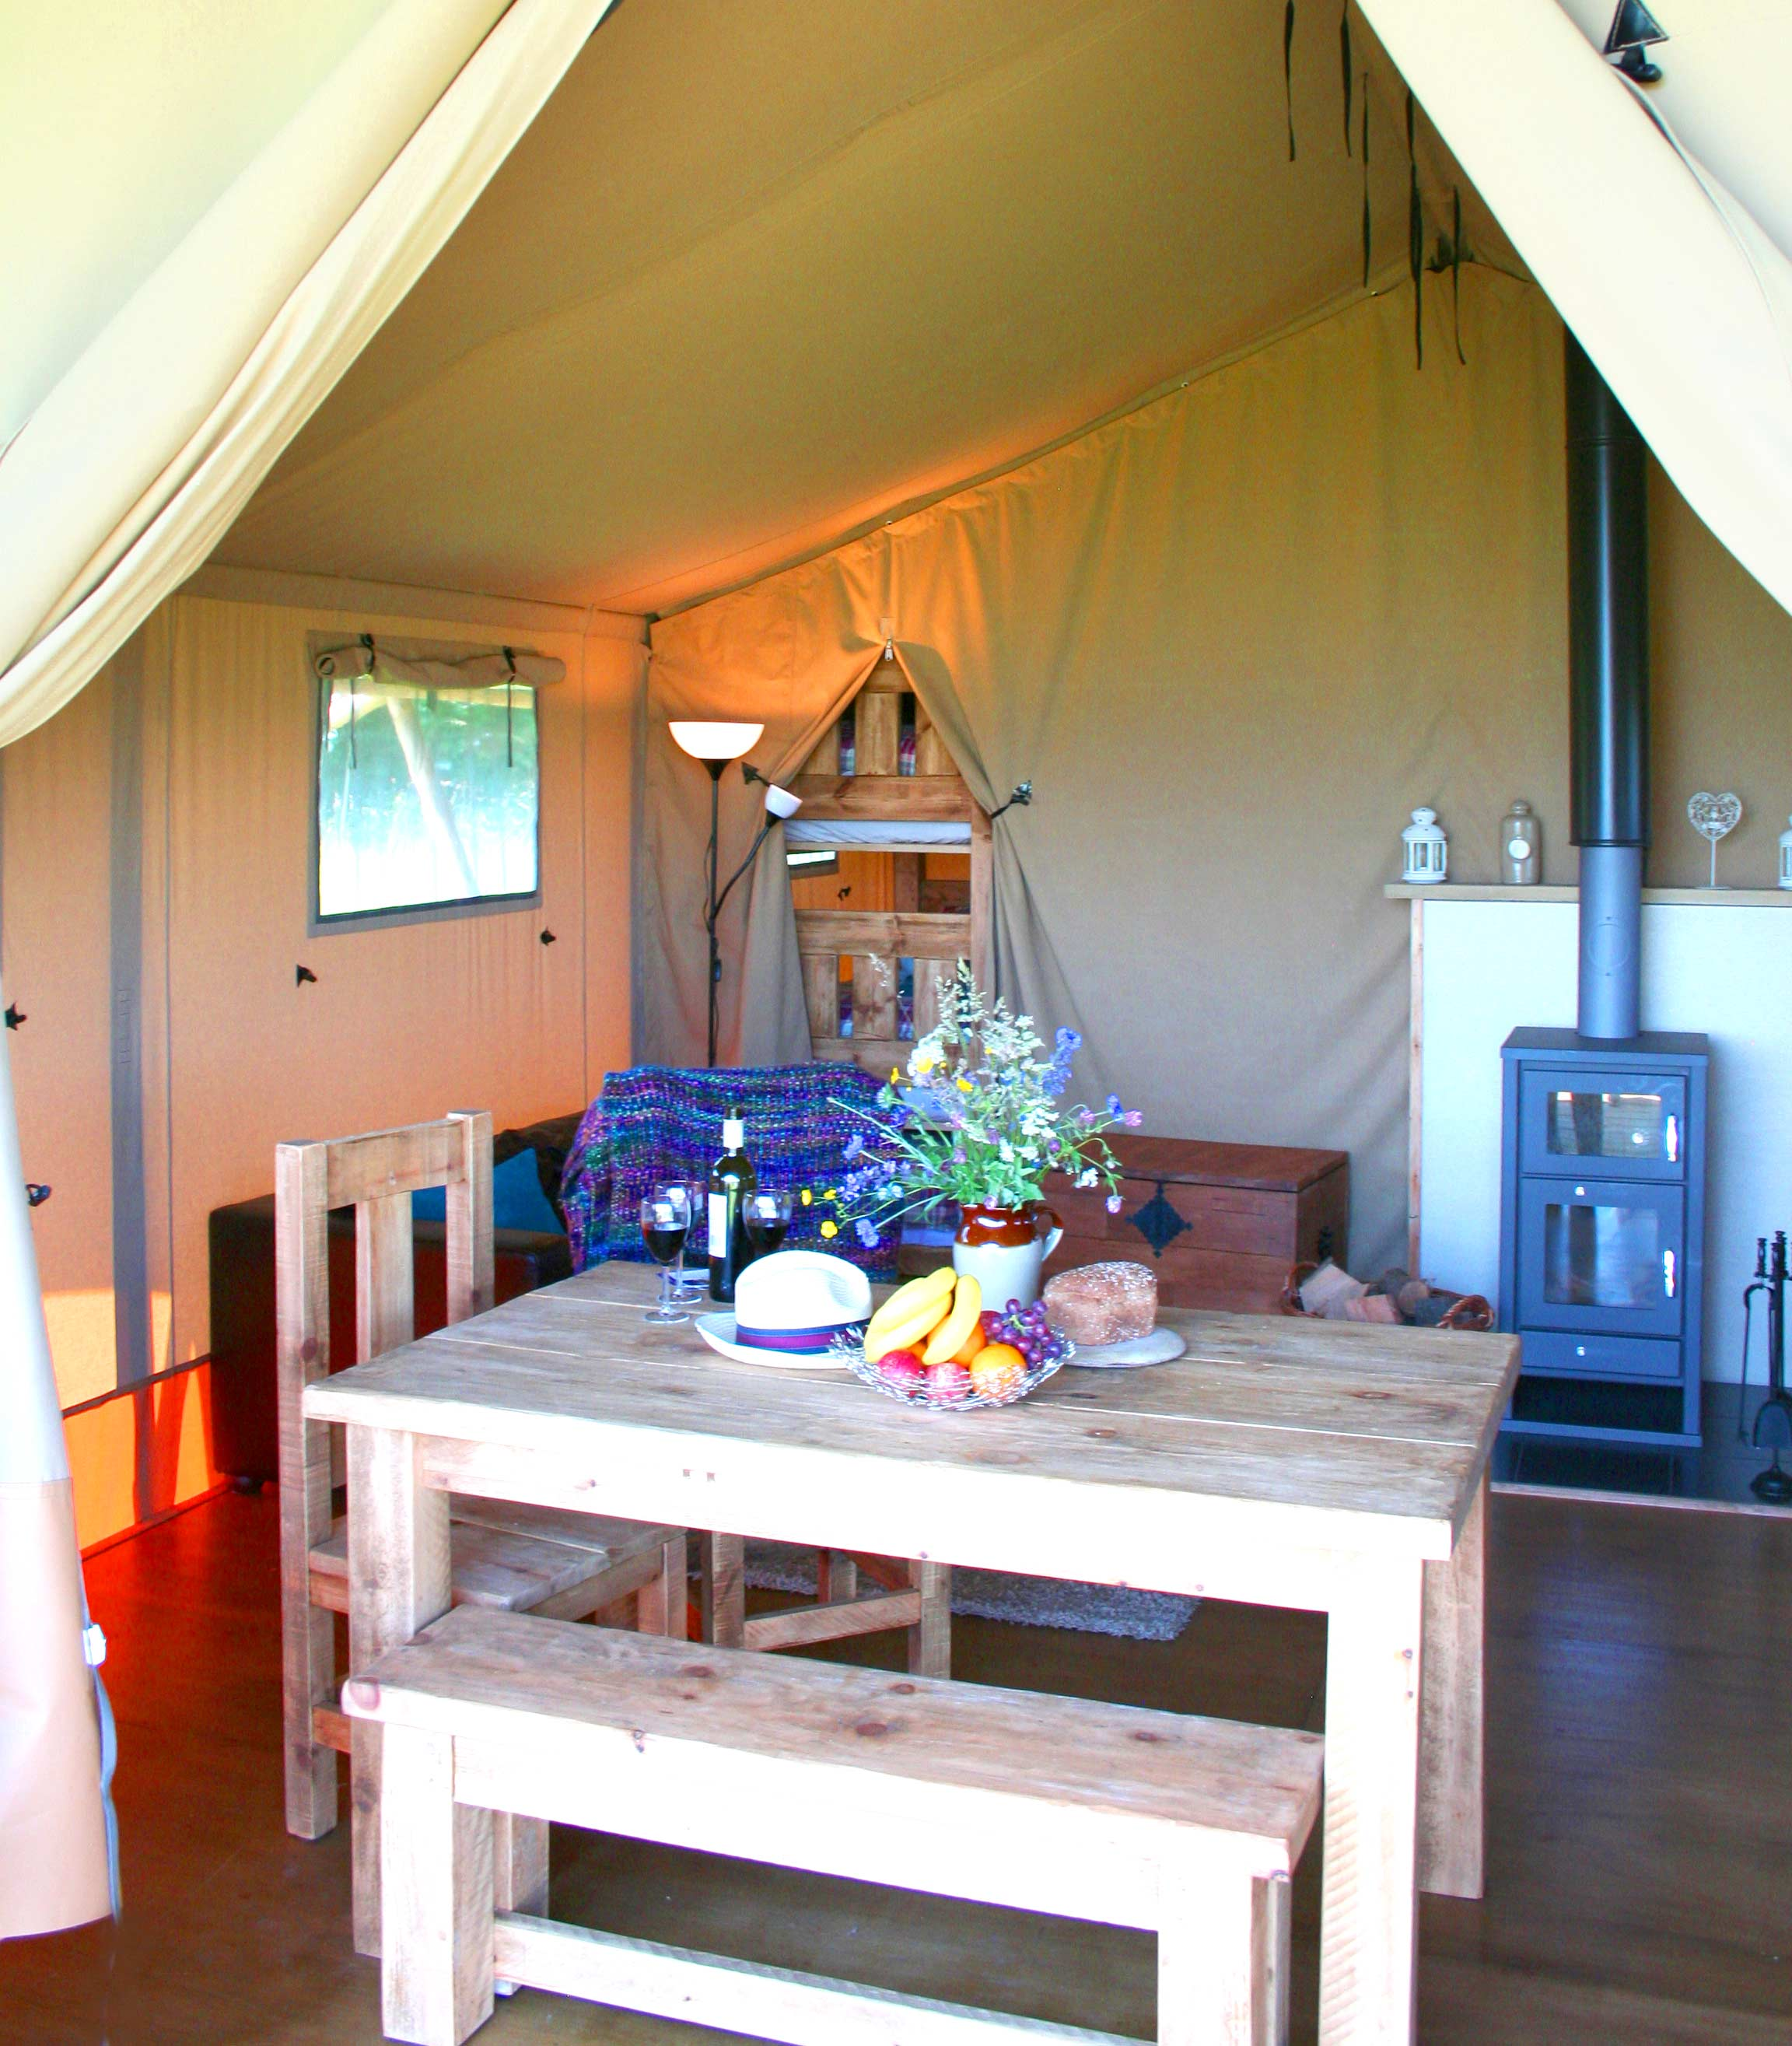 Dining area at Village Farm Getaway, holidays glamping and luxury camping in East Midlands and Leicestershire